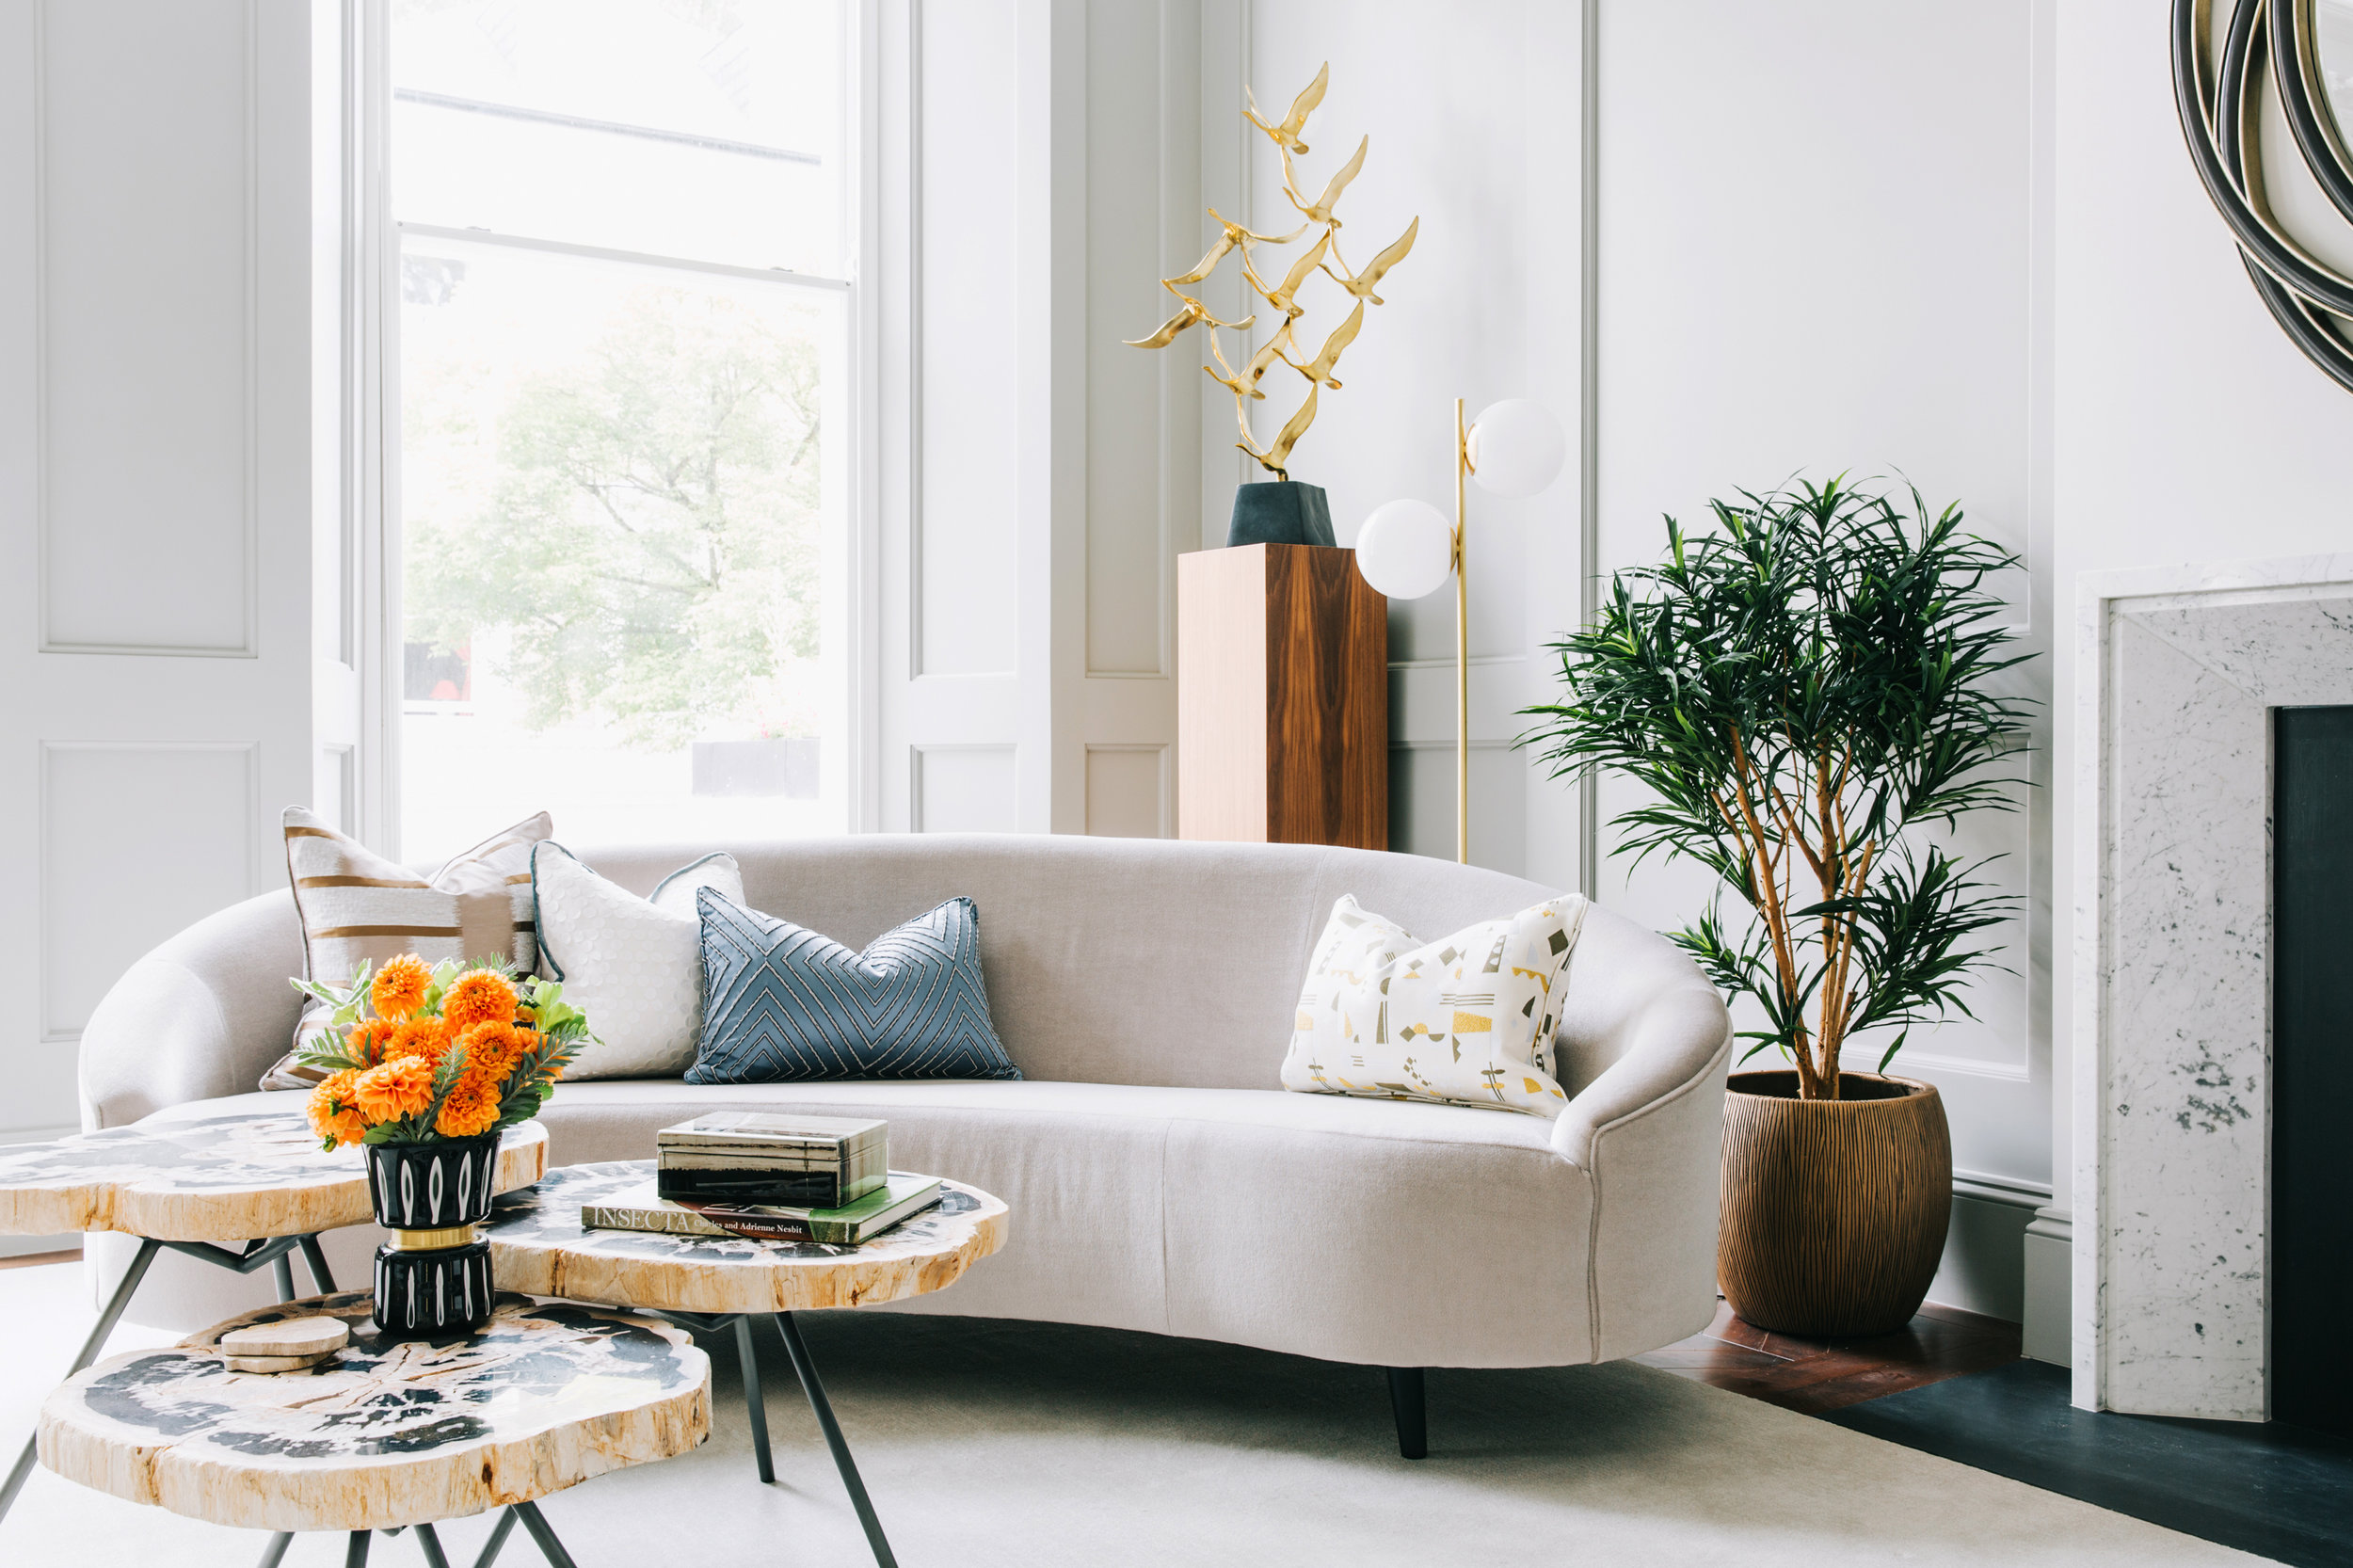 A_LONDON_The_Wetherby_05_living_room.jpg